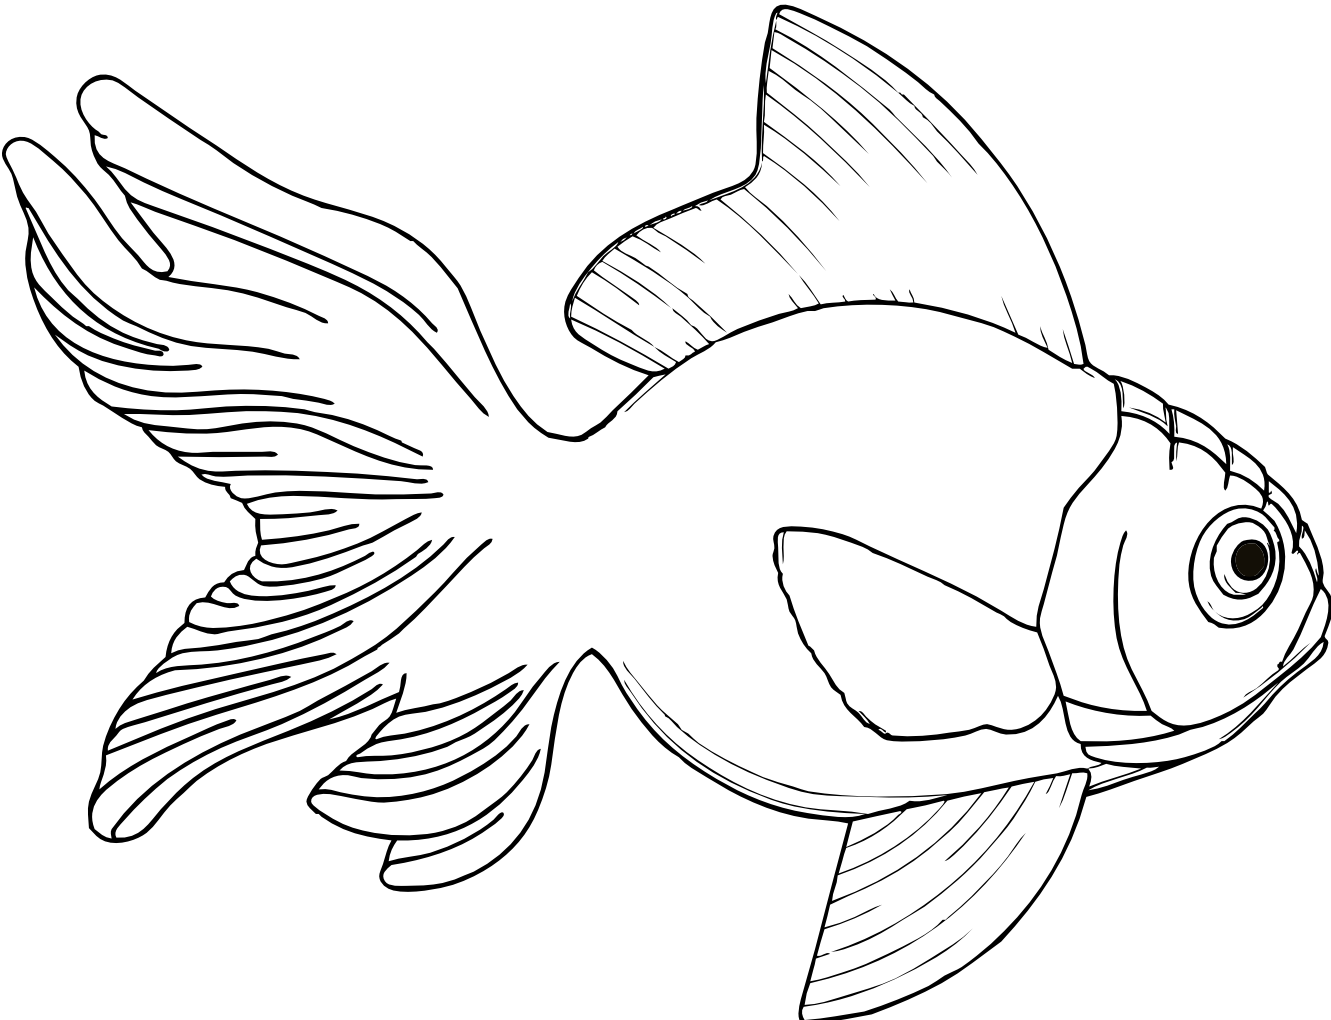 Line Art Work : Fish line art cliparts